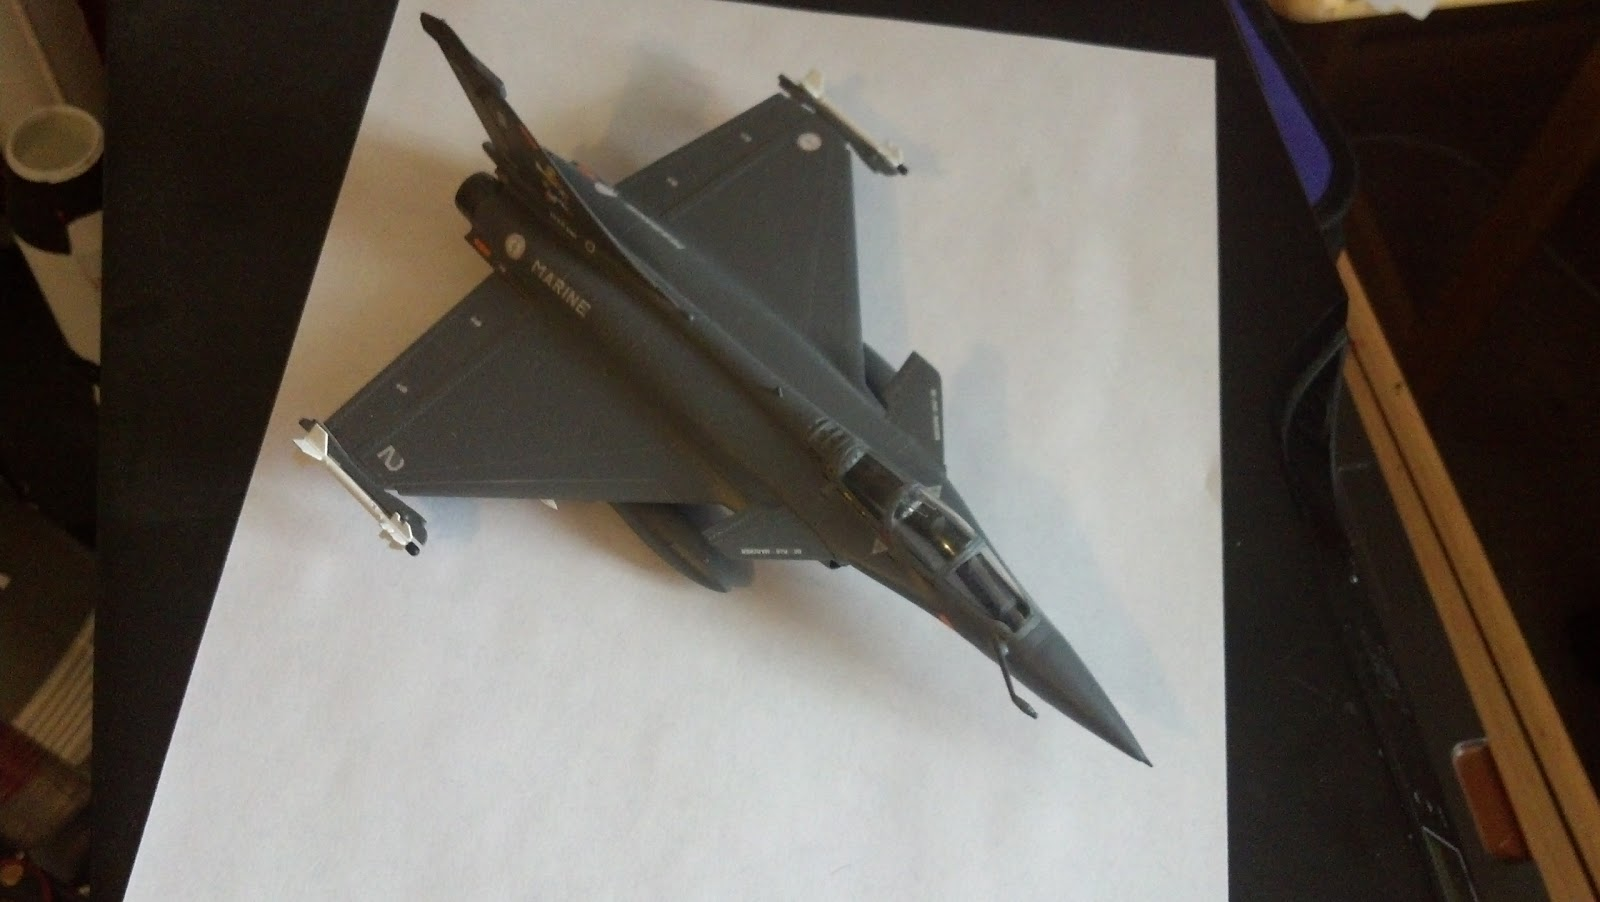 From the sky to my Desk: 1/72 Italeri Dassault Rafale Aéronavale